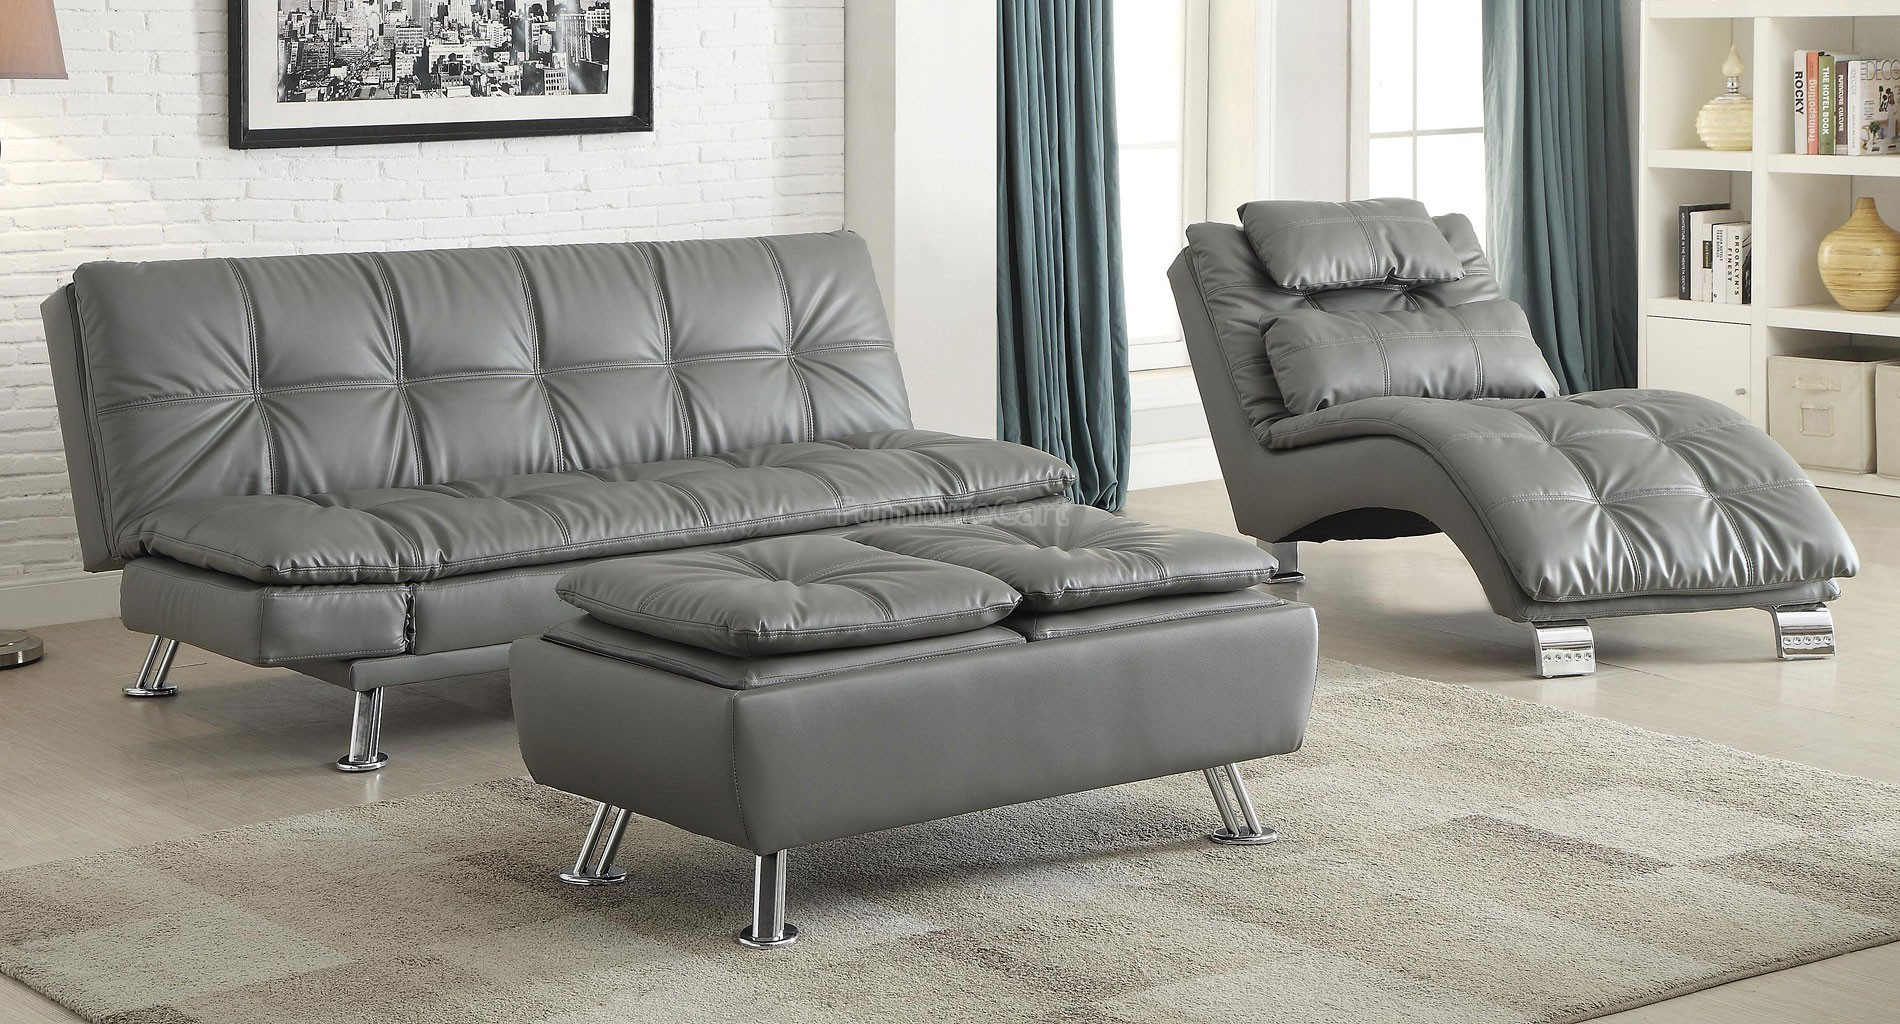 Sofa Bed Grey With Available Matching Chaise And Storage